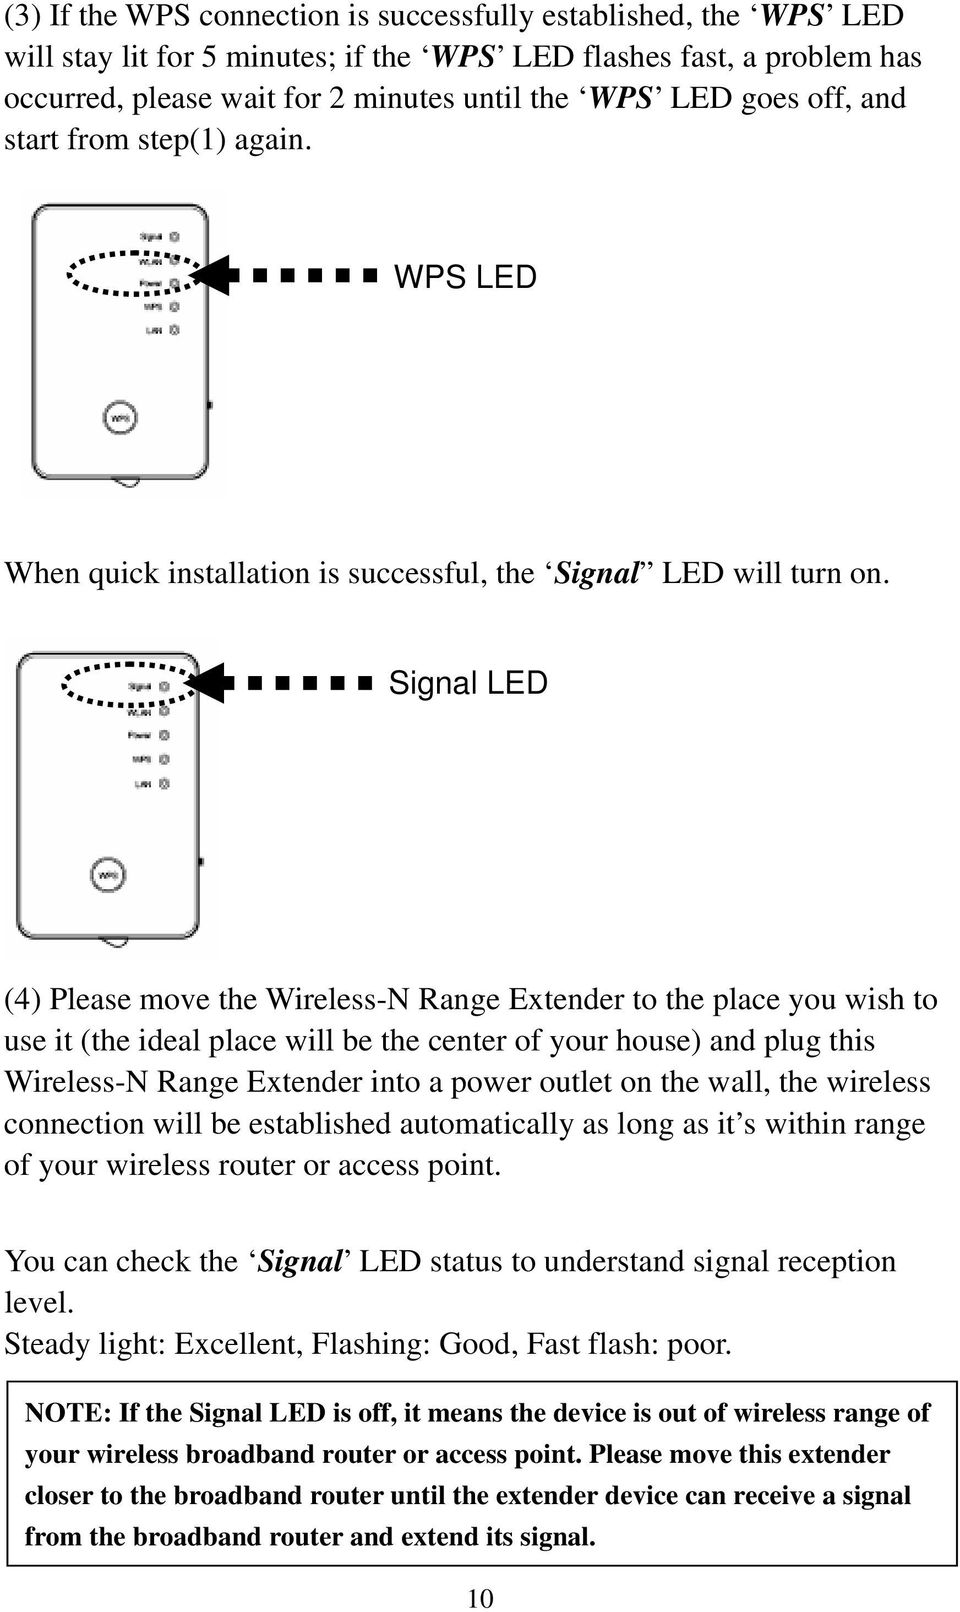 Signal LED (4) Please move the Wireless-N Range Extender to the place you wish to use it (the ideal place will be the center of your house) and plug this Wireless-N Range Extender into a power outlet